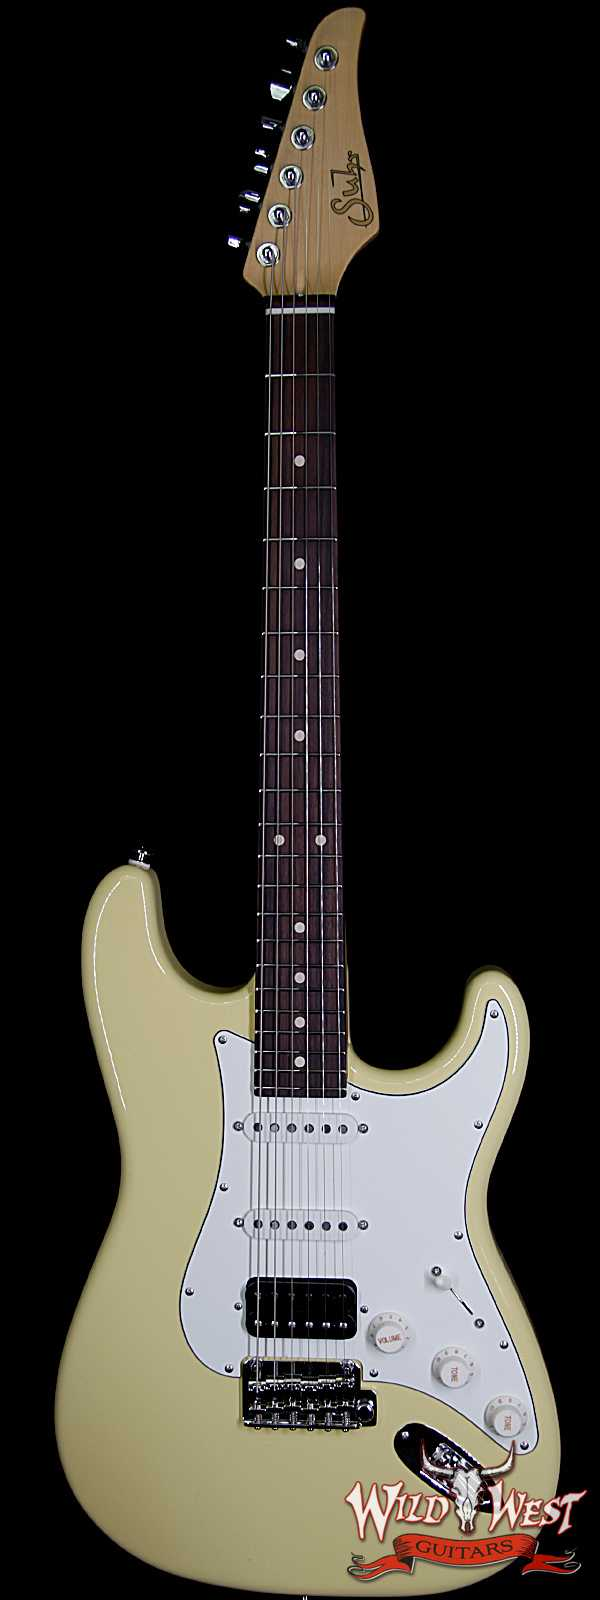 Suhr Classic S (Classic Pro) HSS PU Maple Neck Rosewood Fingerboard Vintage Yellow